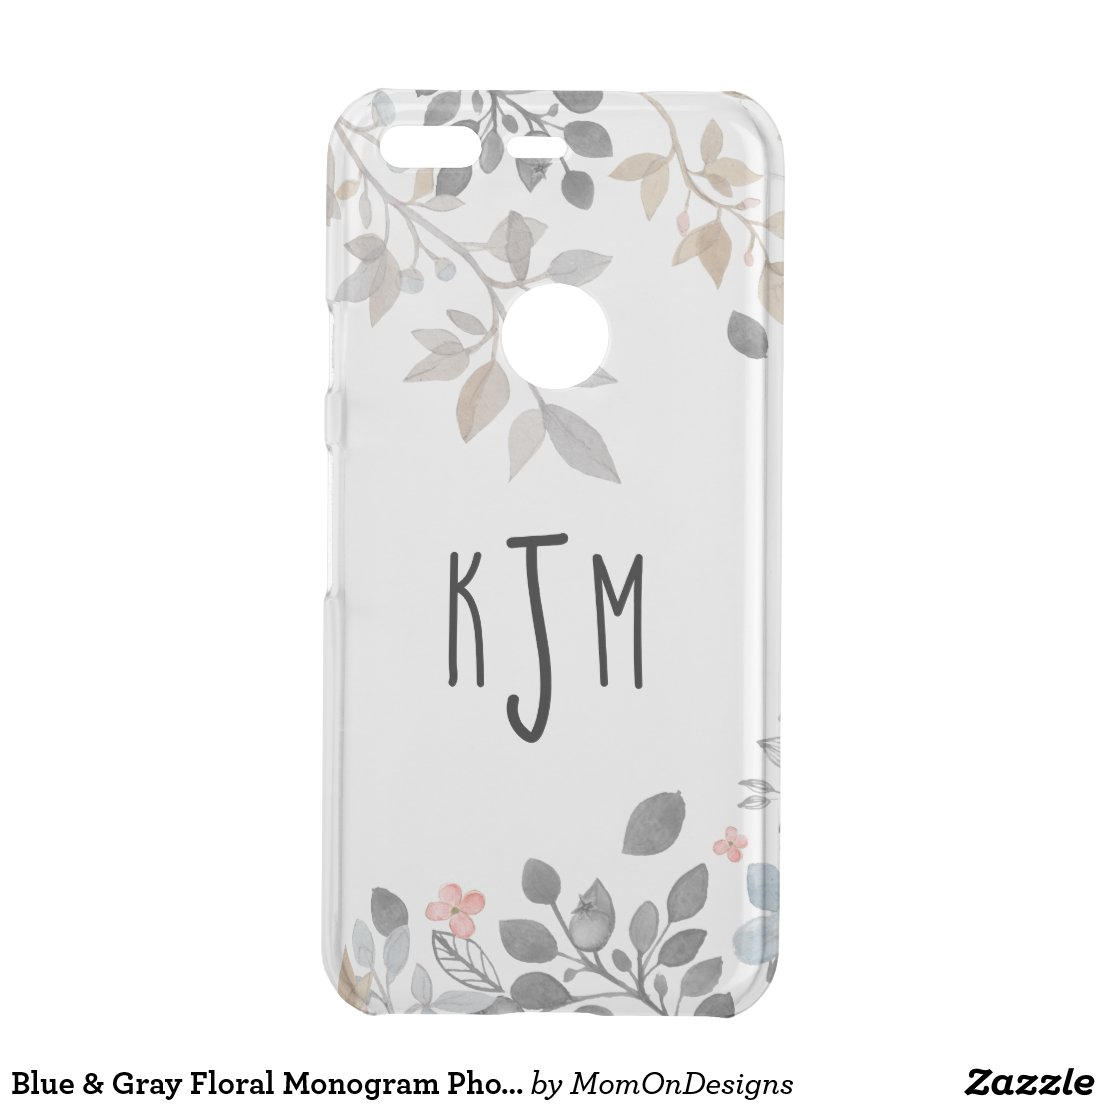 Blue & Grey Floral Monogram Phone Cover